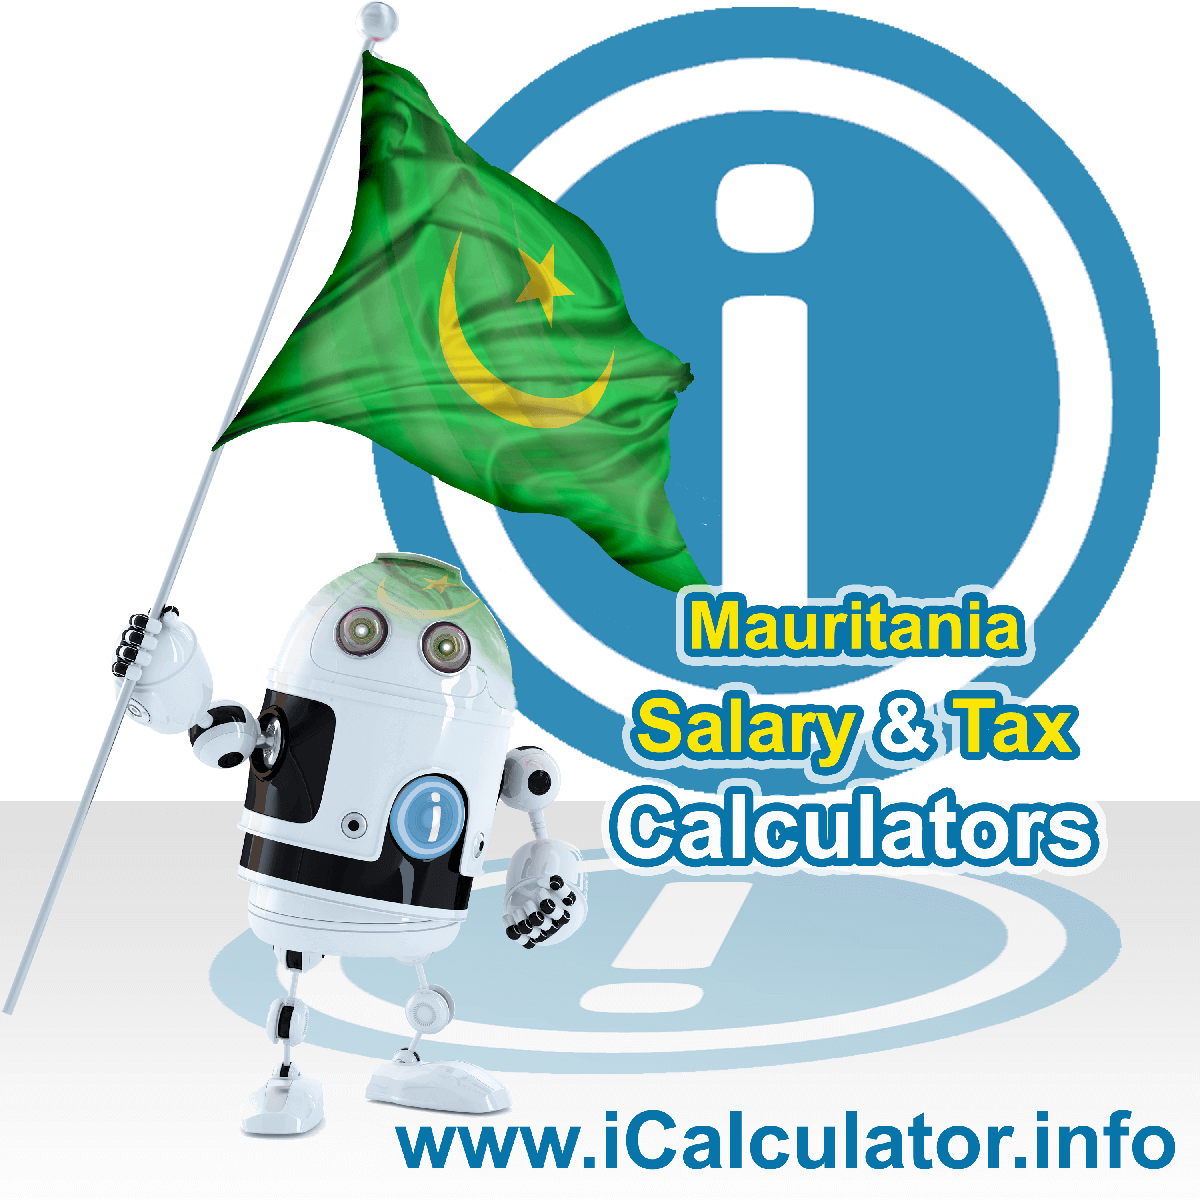 Mauritania Tax Calculator. This image shows the Mauritania flag and information relating to the tax formula for the Mauritania Salary Calculator